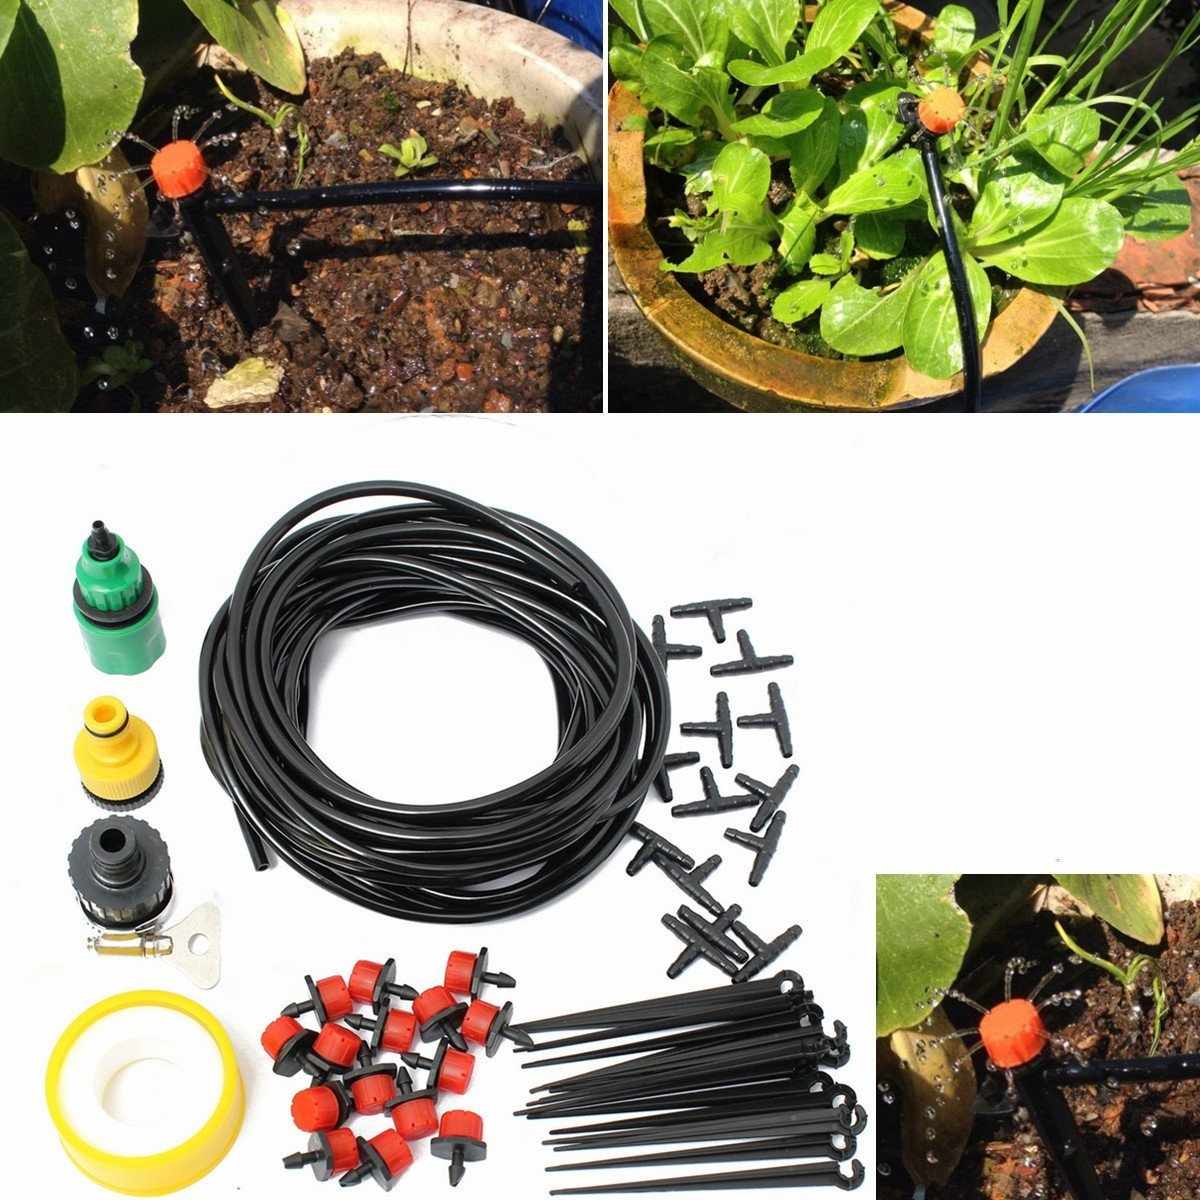 Agile-shop Distribution Drip Irrigation System Kits for Garden Greenhouse Landscaping Plant Watering Drippers Sets Accessories + 10M Hose